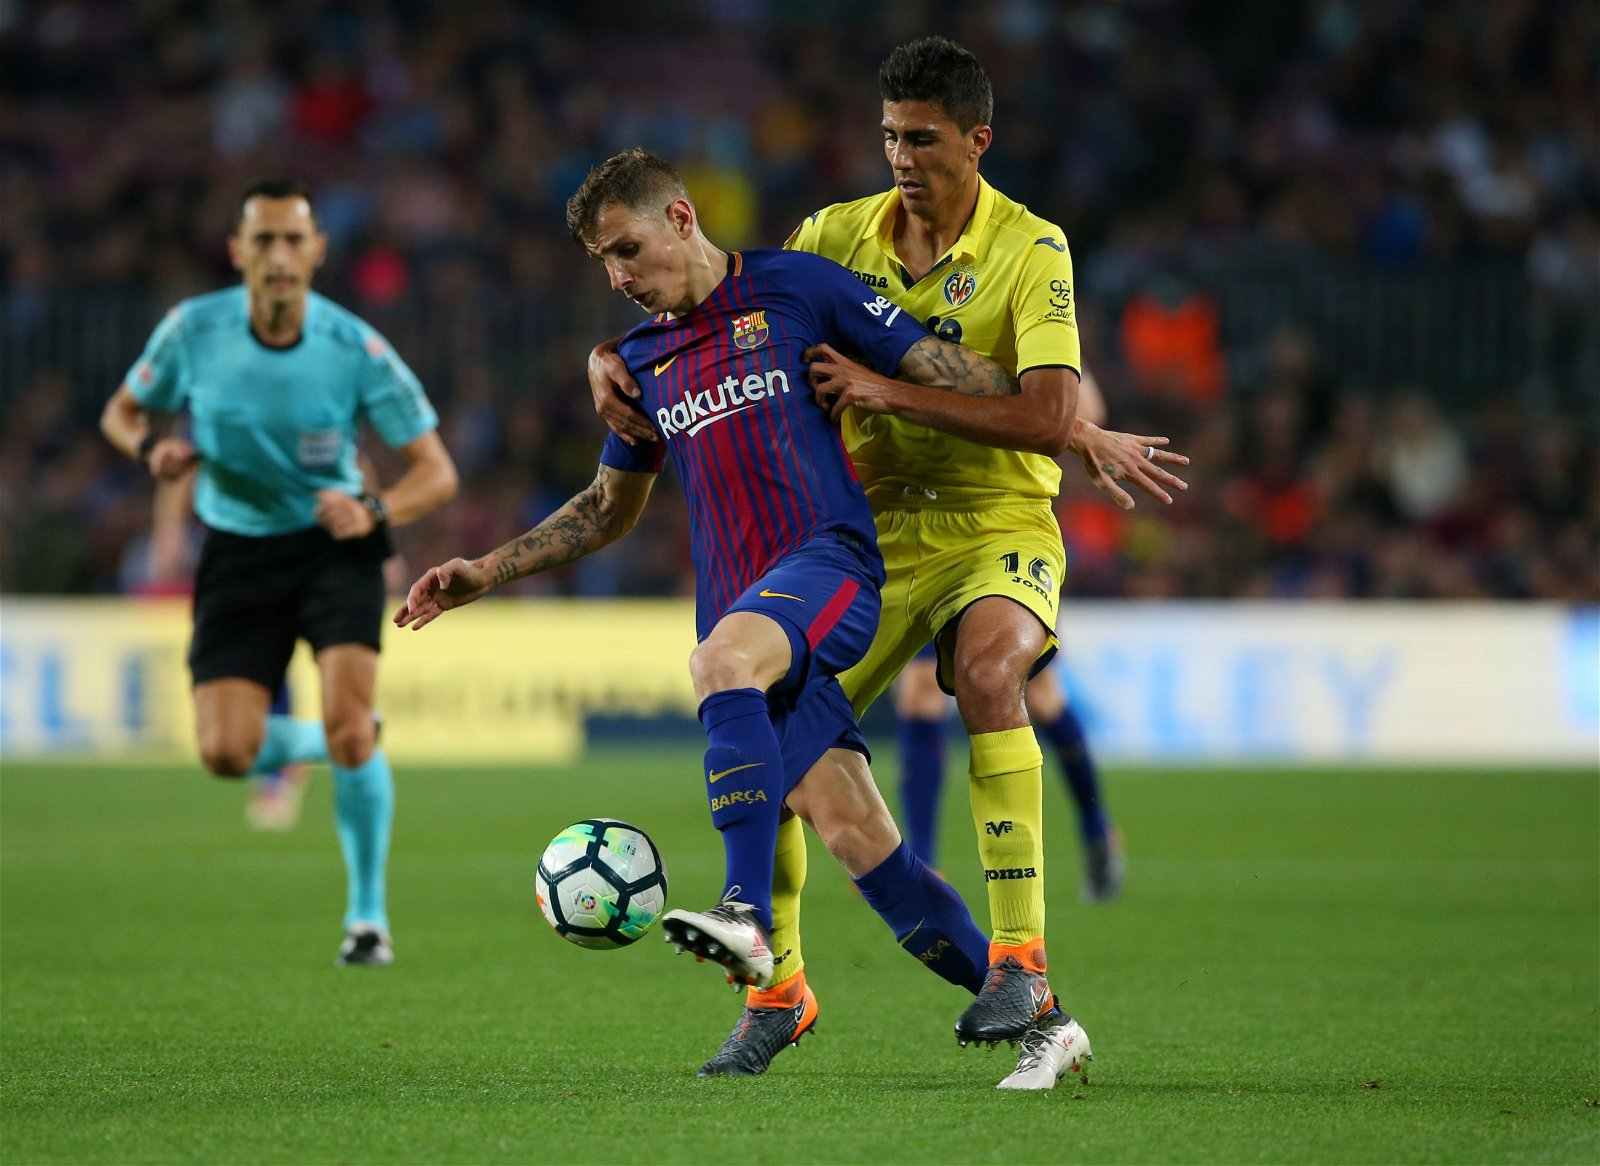 Digne in action for Barca